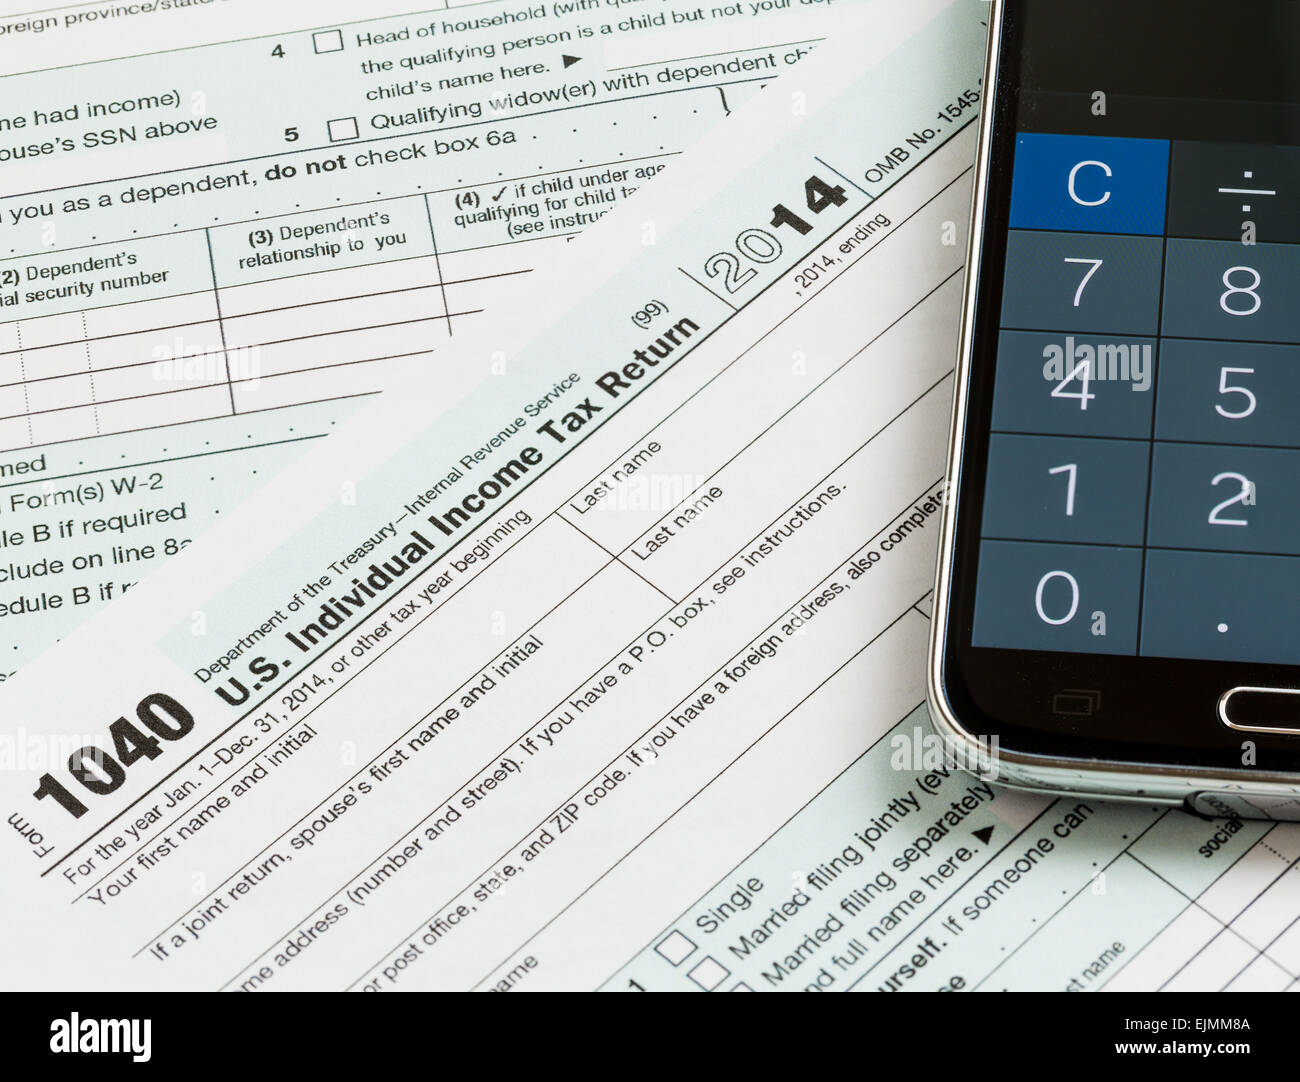 USA tax form 1040 for year 2014 with calculator app on smartphone ...